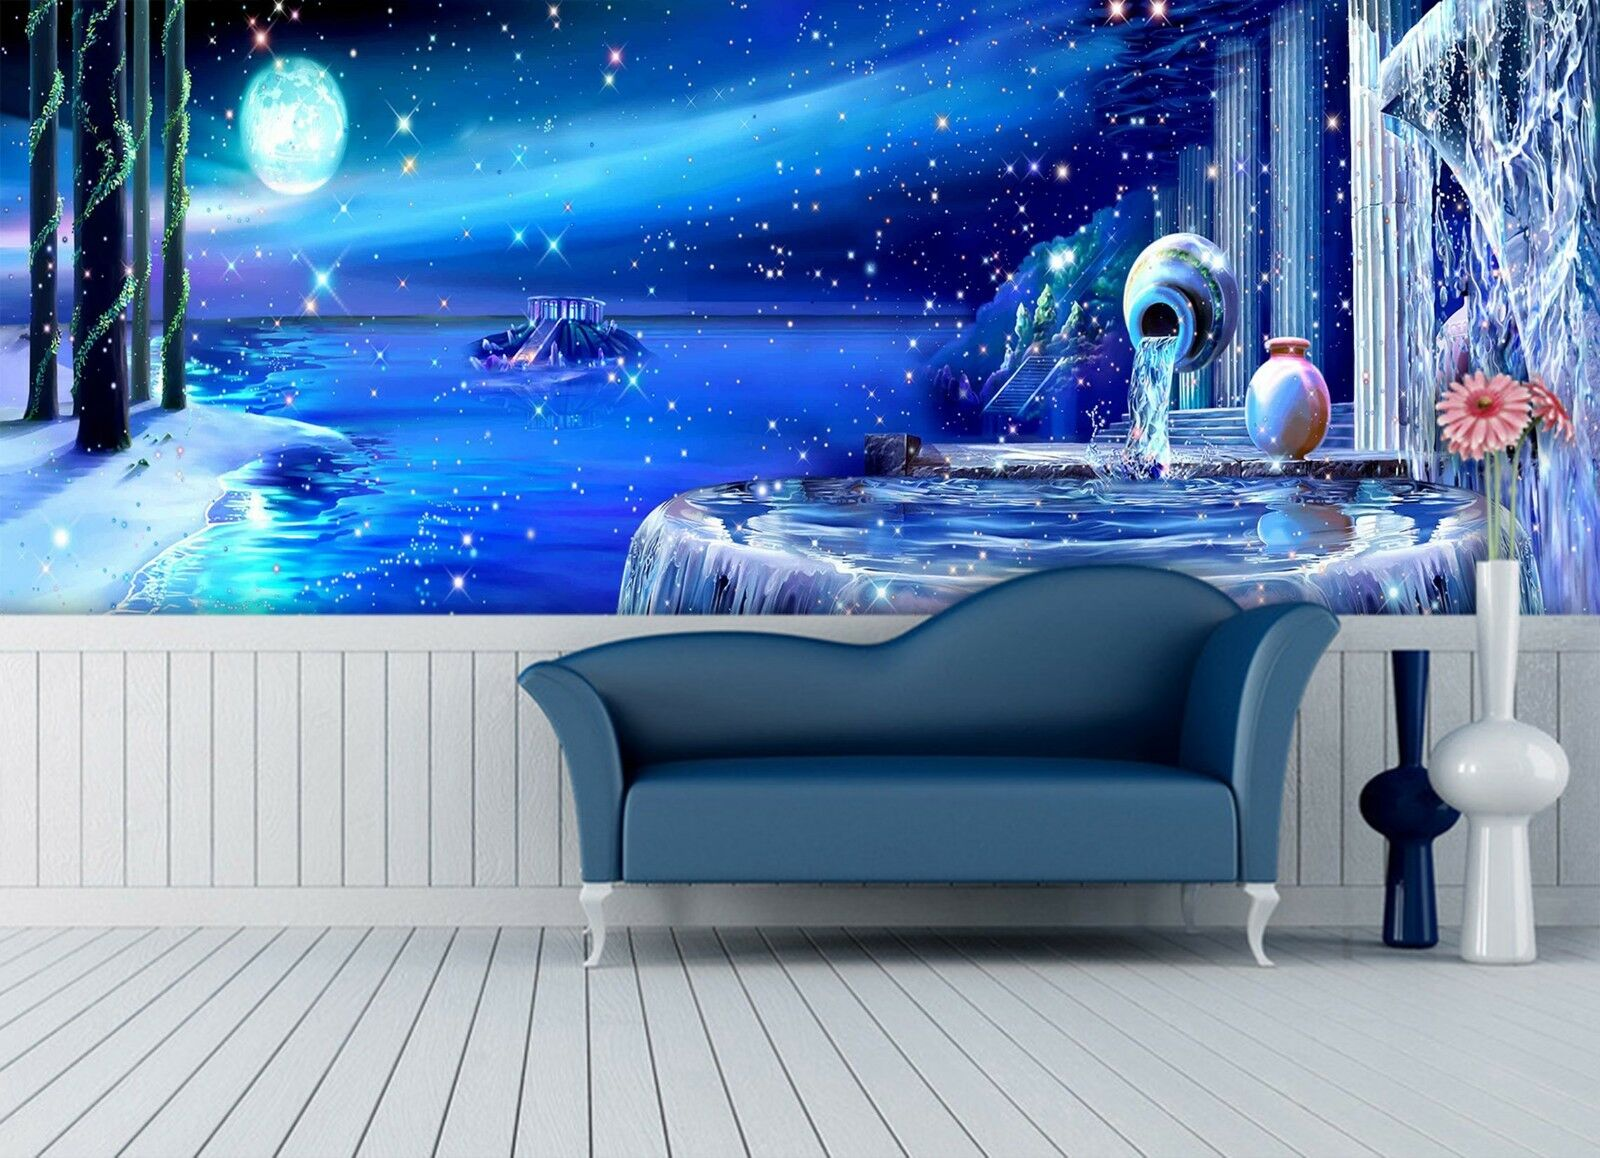 3D Dream Lake 7316 Wallpaper Mural Wall Print Wall Wallpaper Murals US Lemon